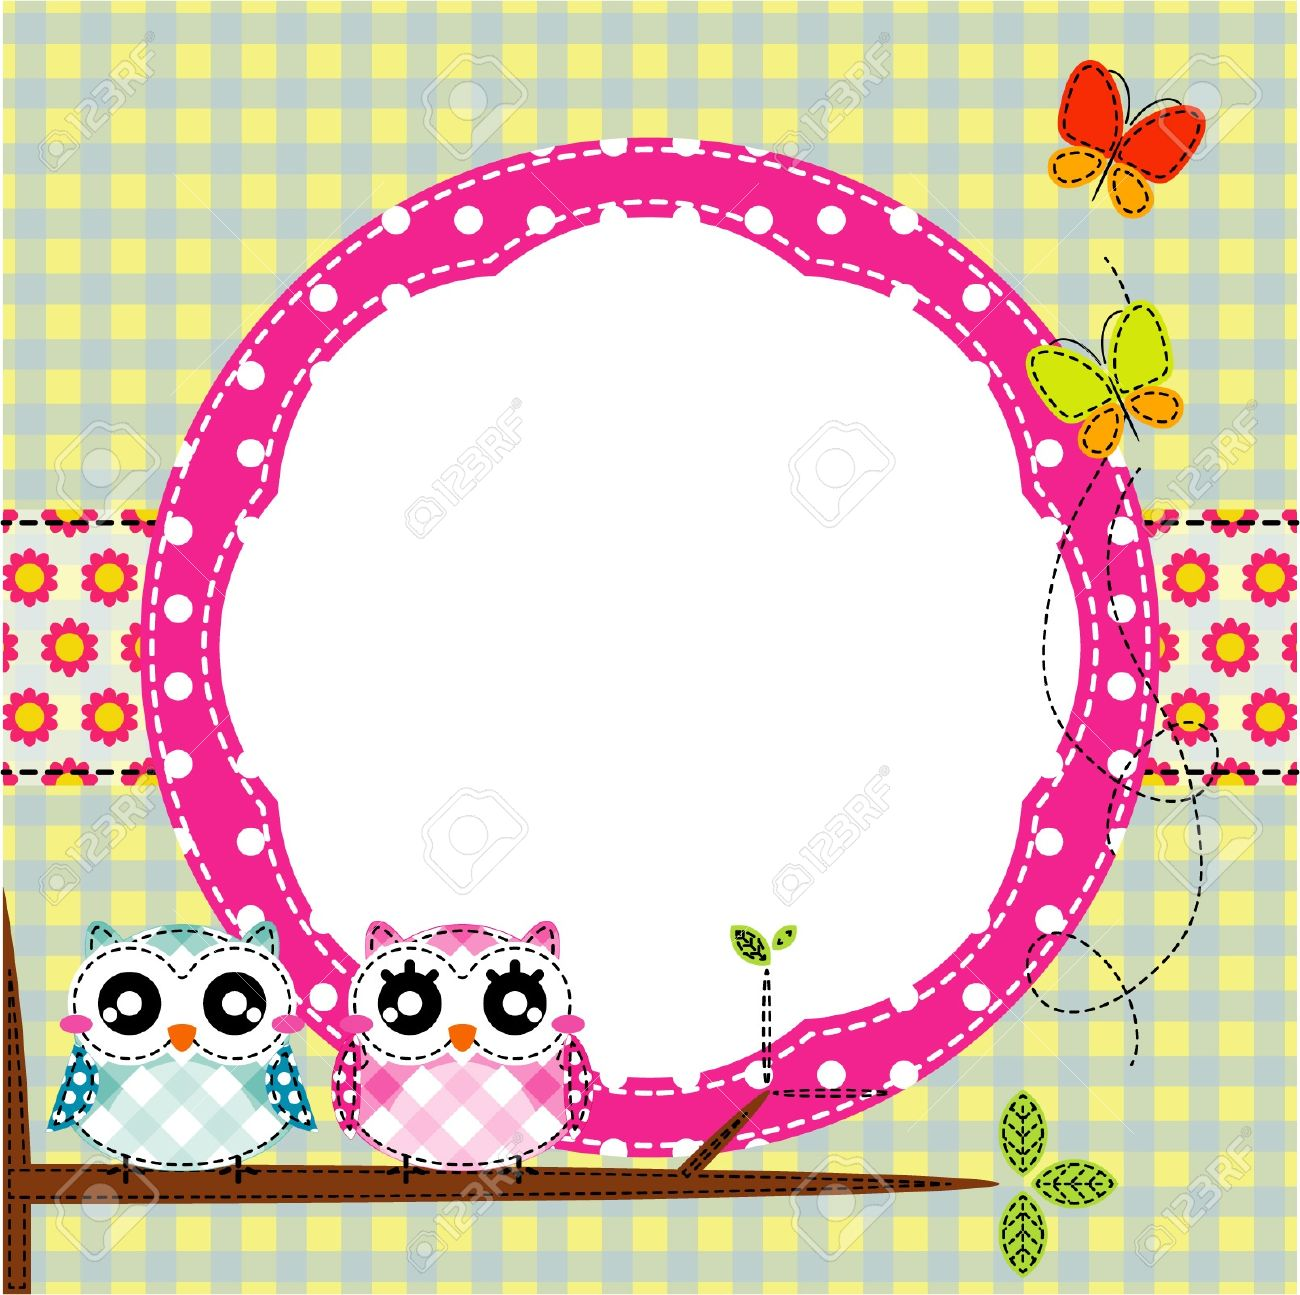 frame of cute owls on branch royalty free cliparts vectors and  - frame of cute owls on branch stock vector